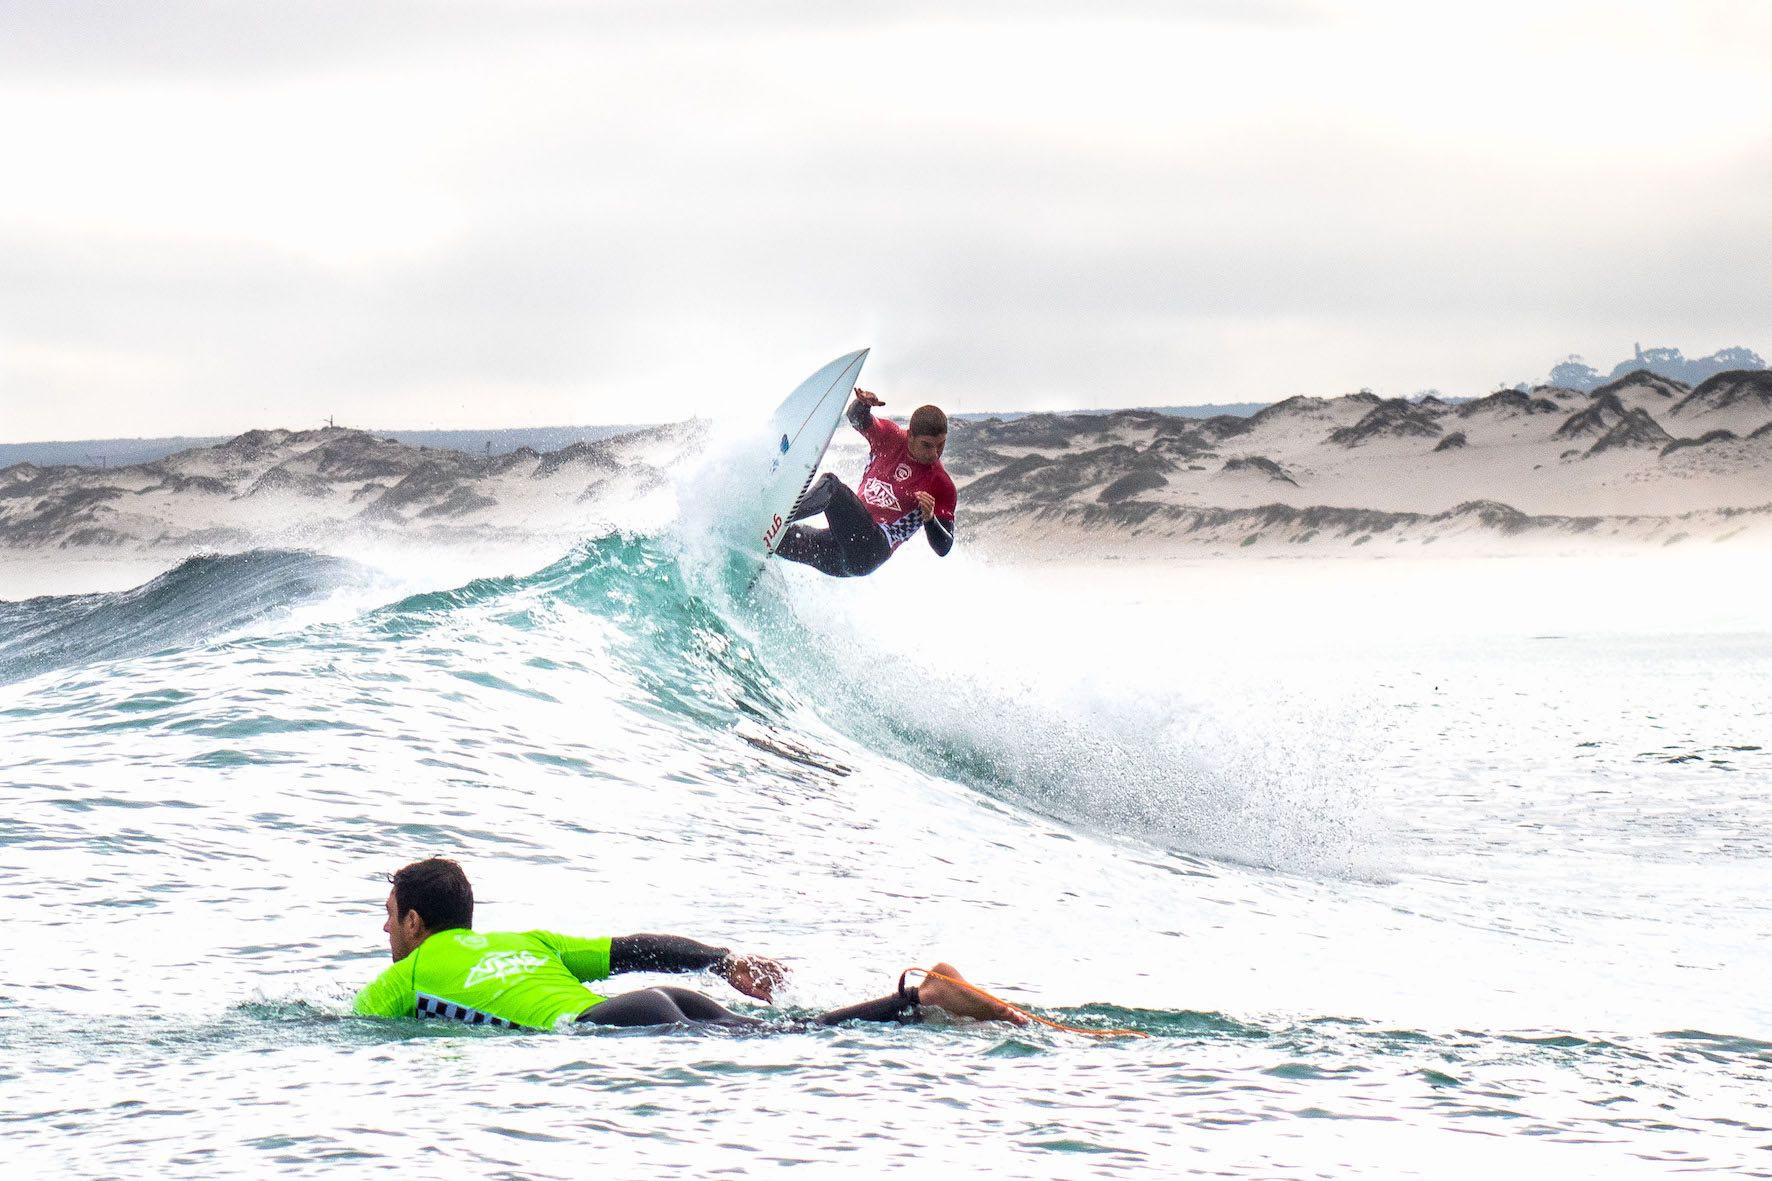 Koby Oberholzer surfing in the 2019 Vans Surf Pro Classic